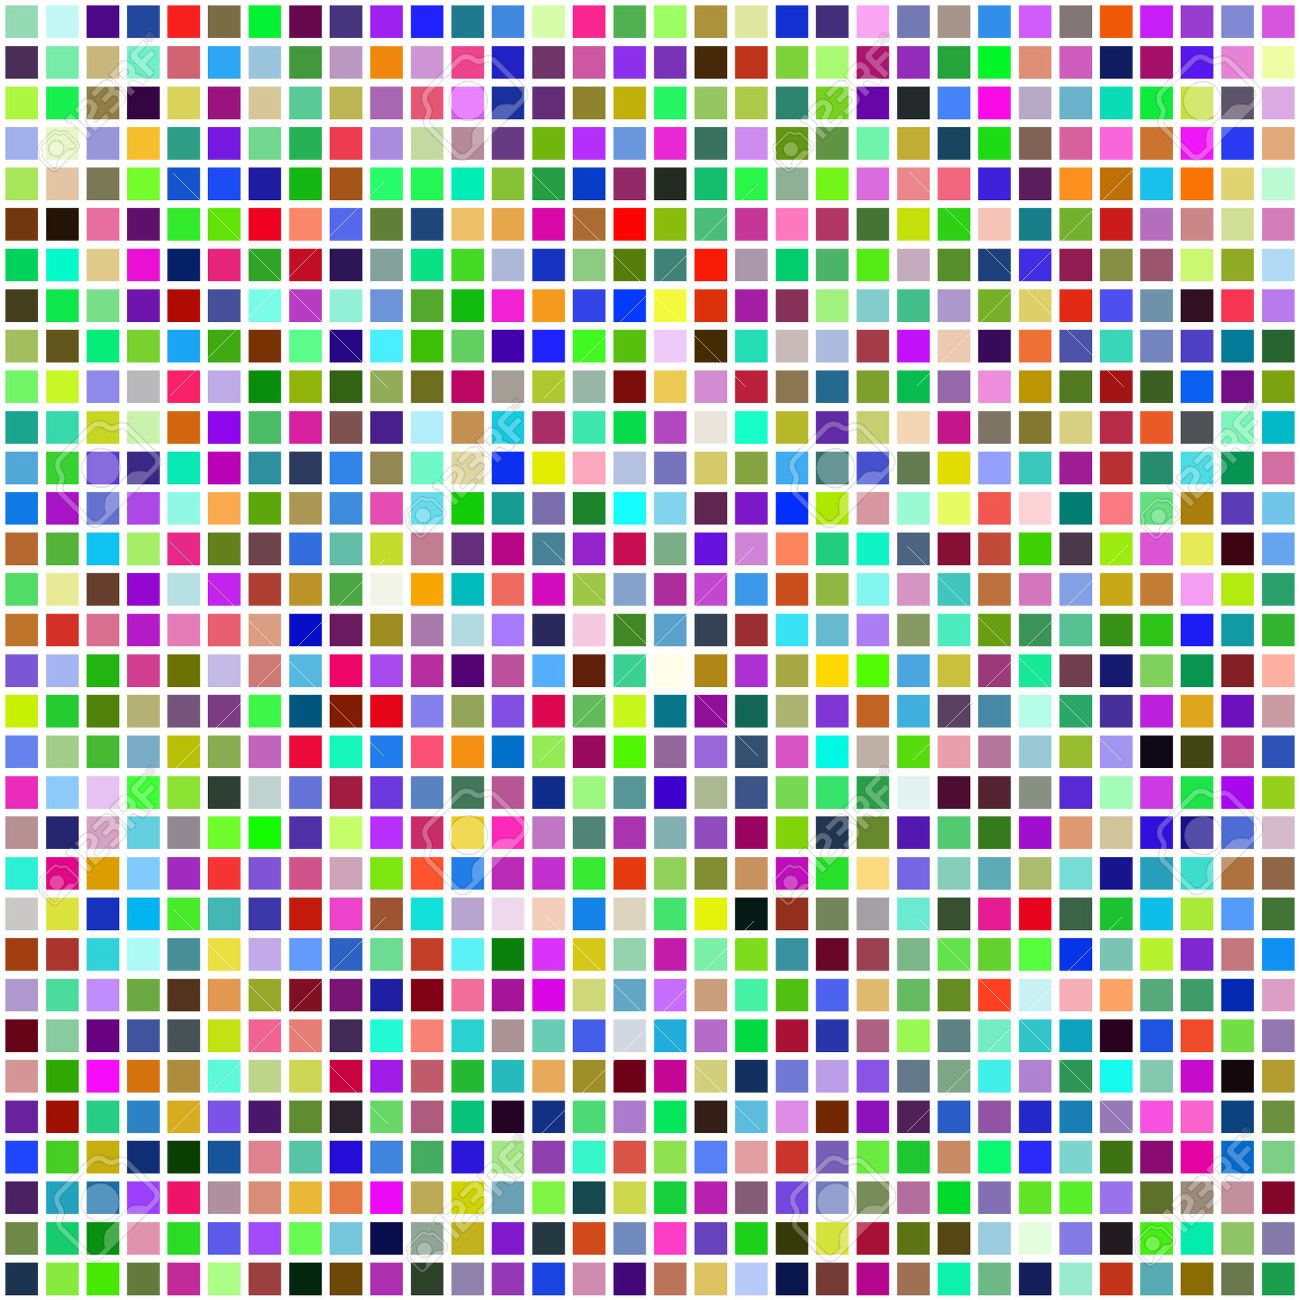 4478496-Colorful-multi-color-seamless-square-tiles-for-bathroom-kitchen-or-background-use-Stock-Vector